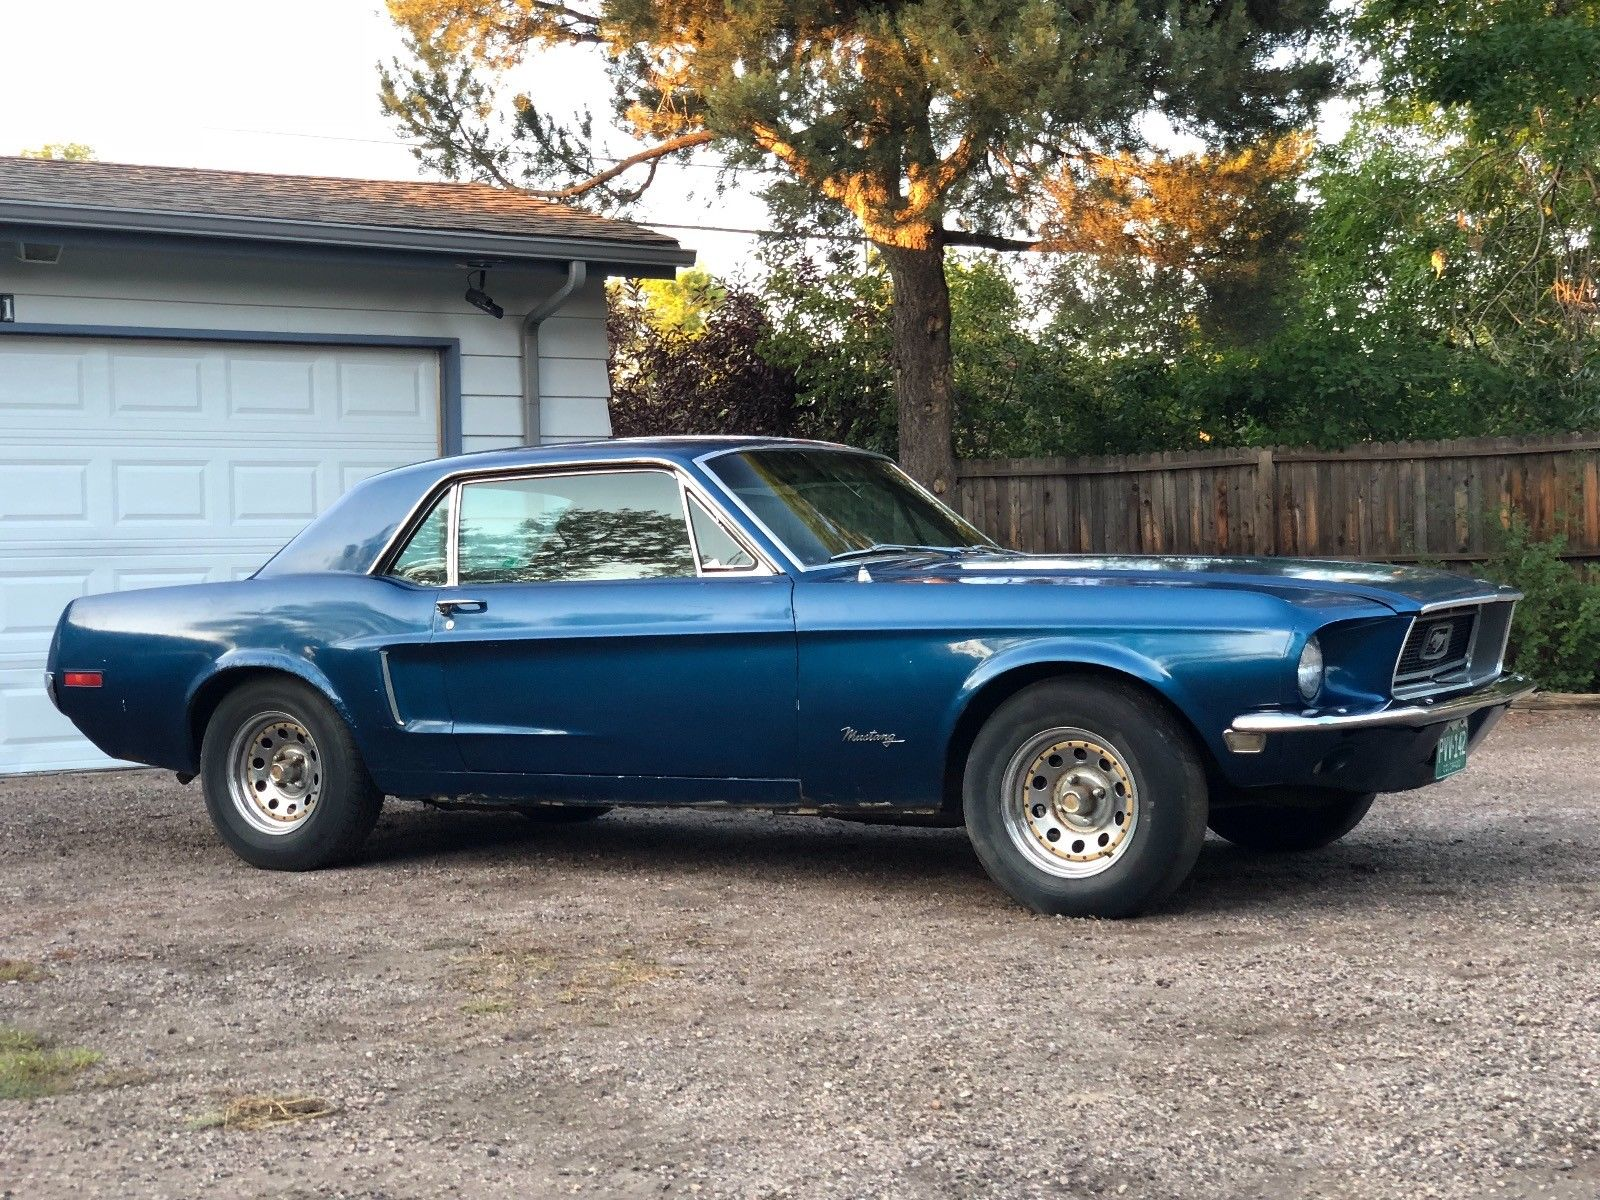 Awesome 1968 Ford Mustang Coupe 1968 Ford Mustang Coupe ...1968 Mustang Coupe Black